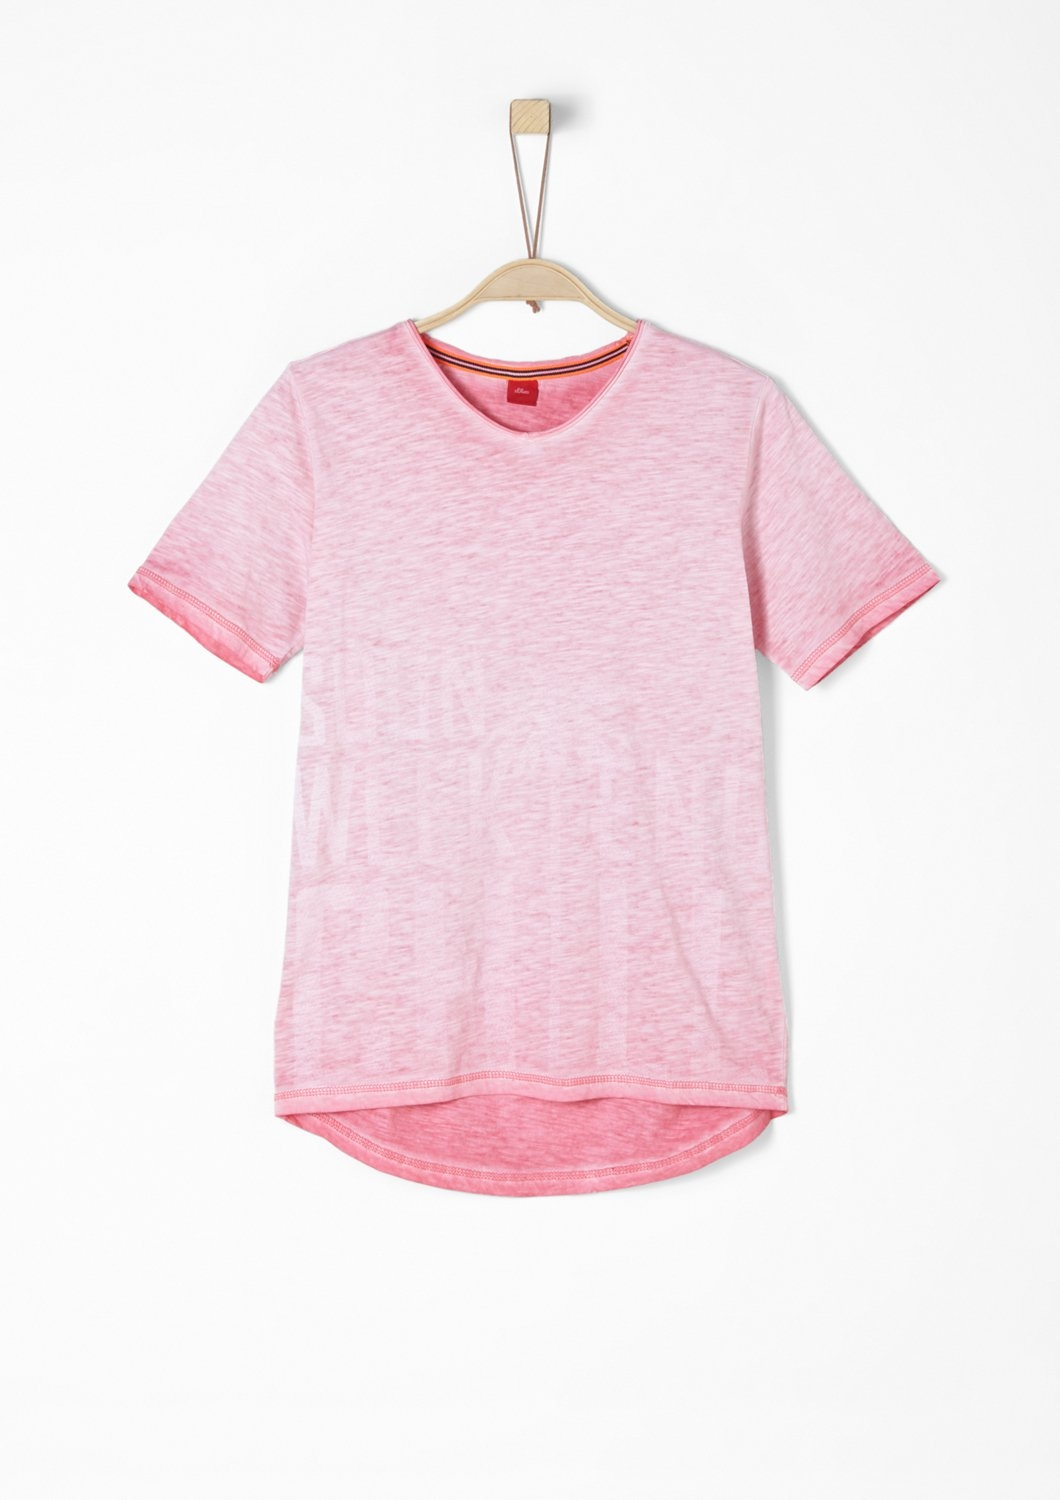 S.oliver Red Label Junior T-shirt in sun-faded look voor jongens bestellen: 14 dagen bedenktijd